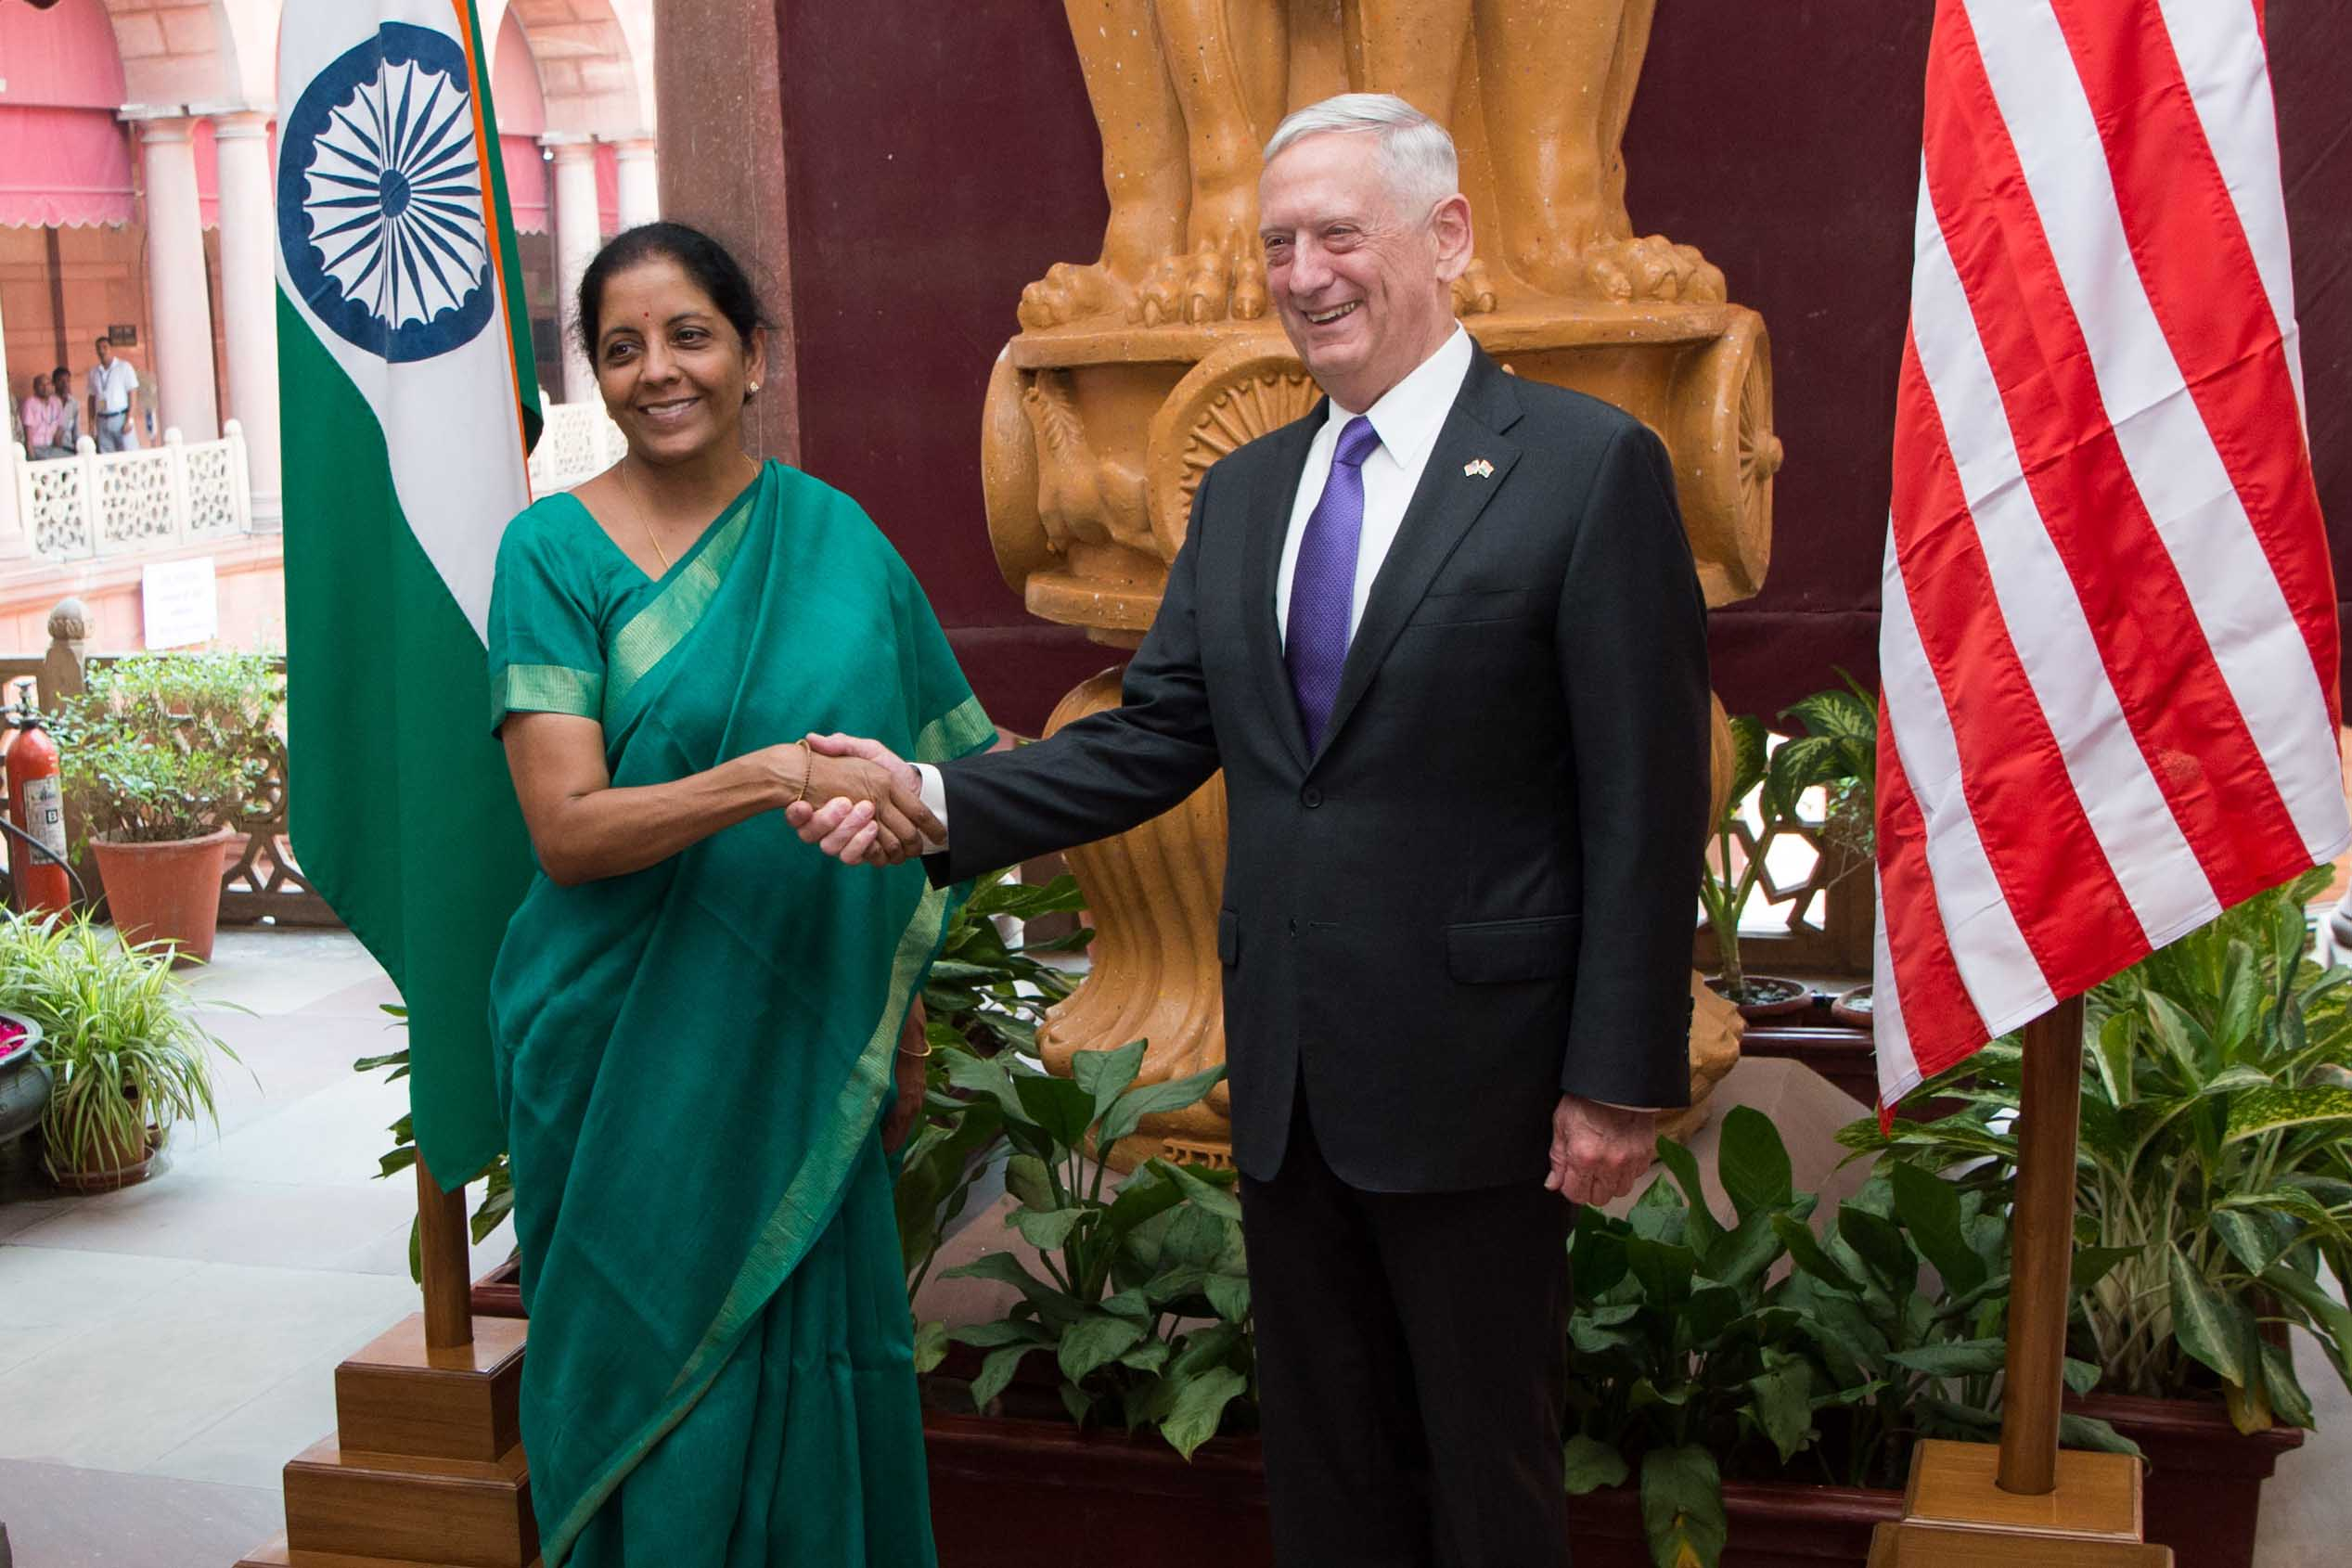 Defense Secretary Jim Mattis shakes hands with Indian defense leader.